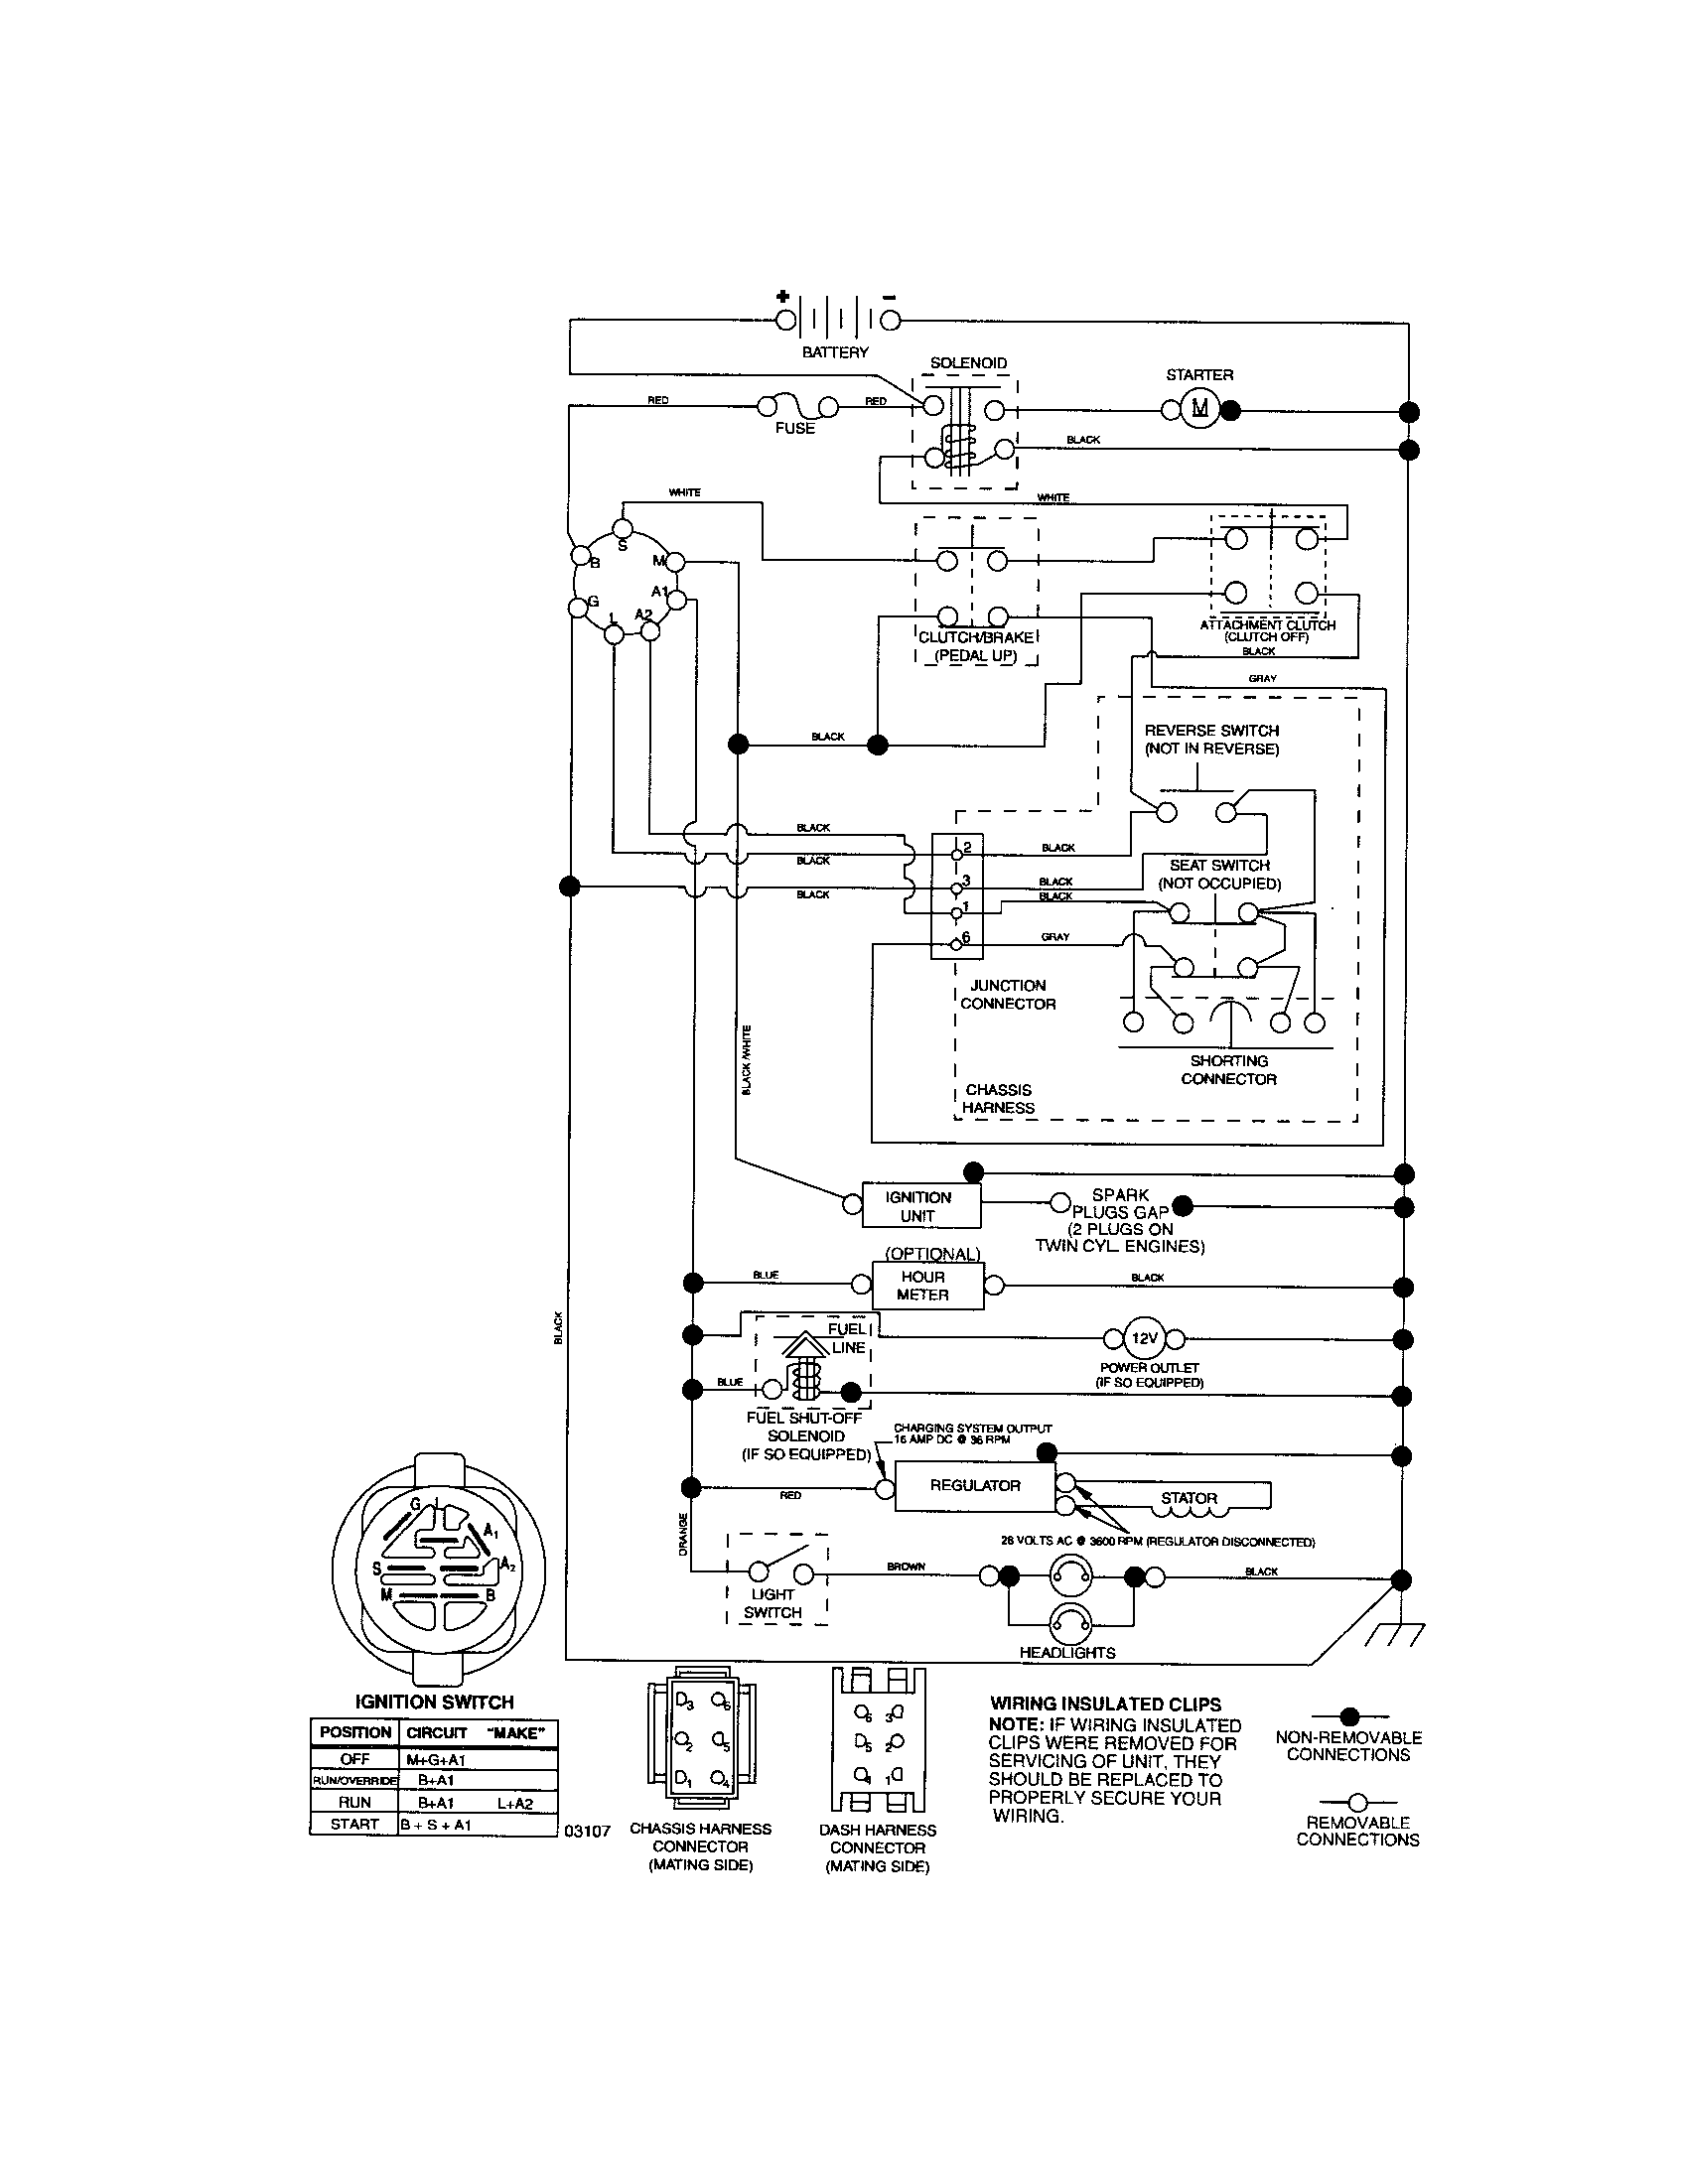 craftsman riding mower electrical diagram wiring diagram craftsman rh pinterest com craftsman mower wiring diagram craftsman lawn tractor wiring diagram